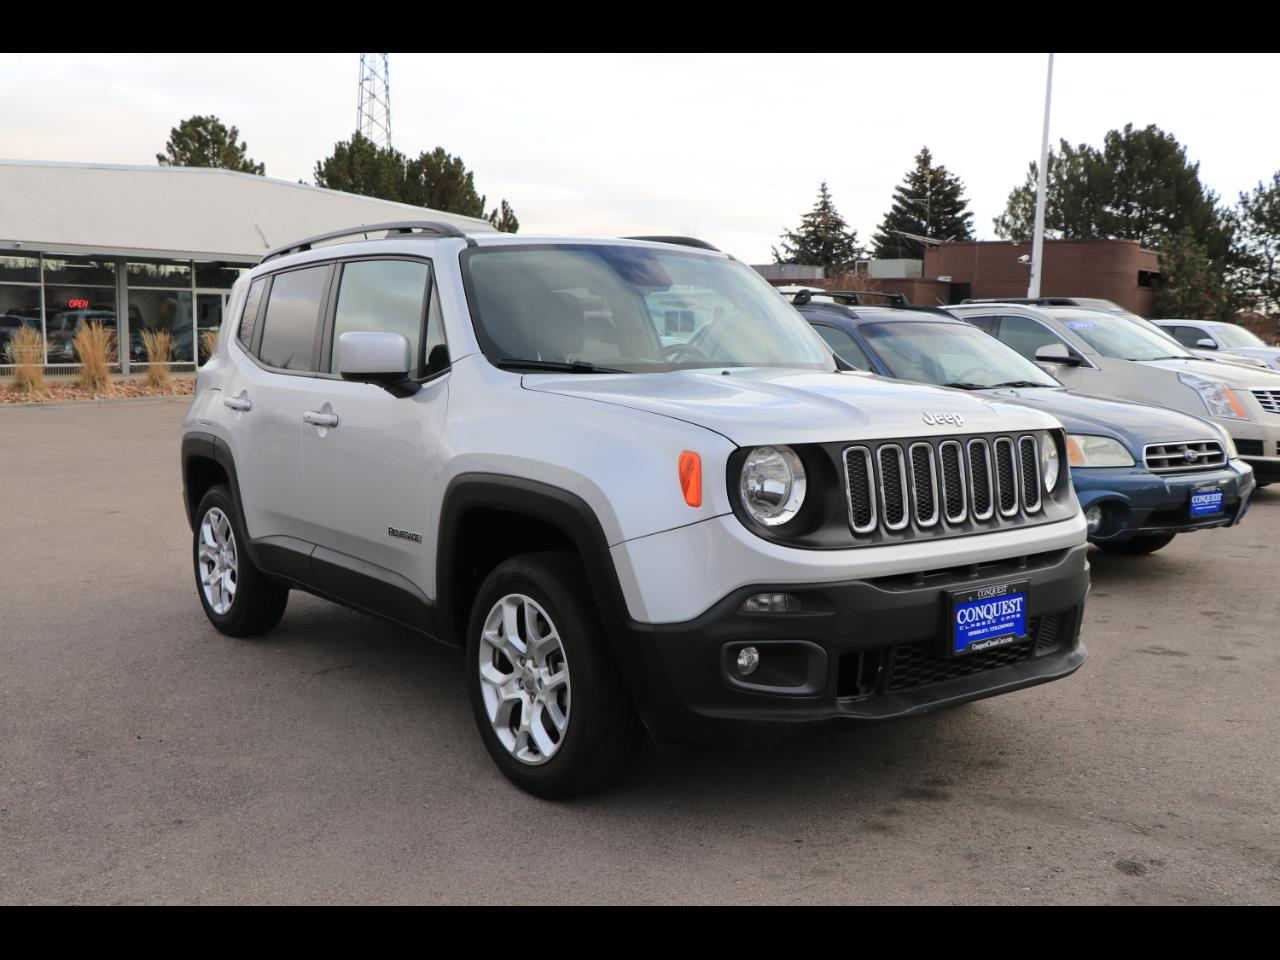 for sale 2017 jeep renegade in greeley, colorado cars - greeley, co at geebo